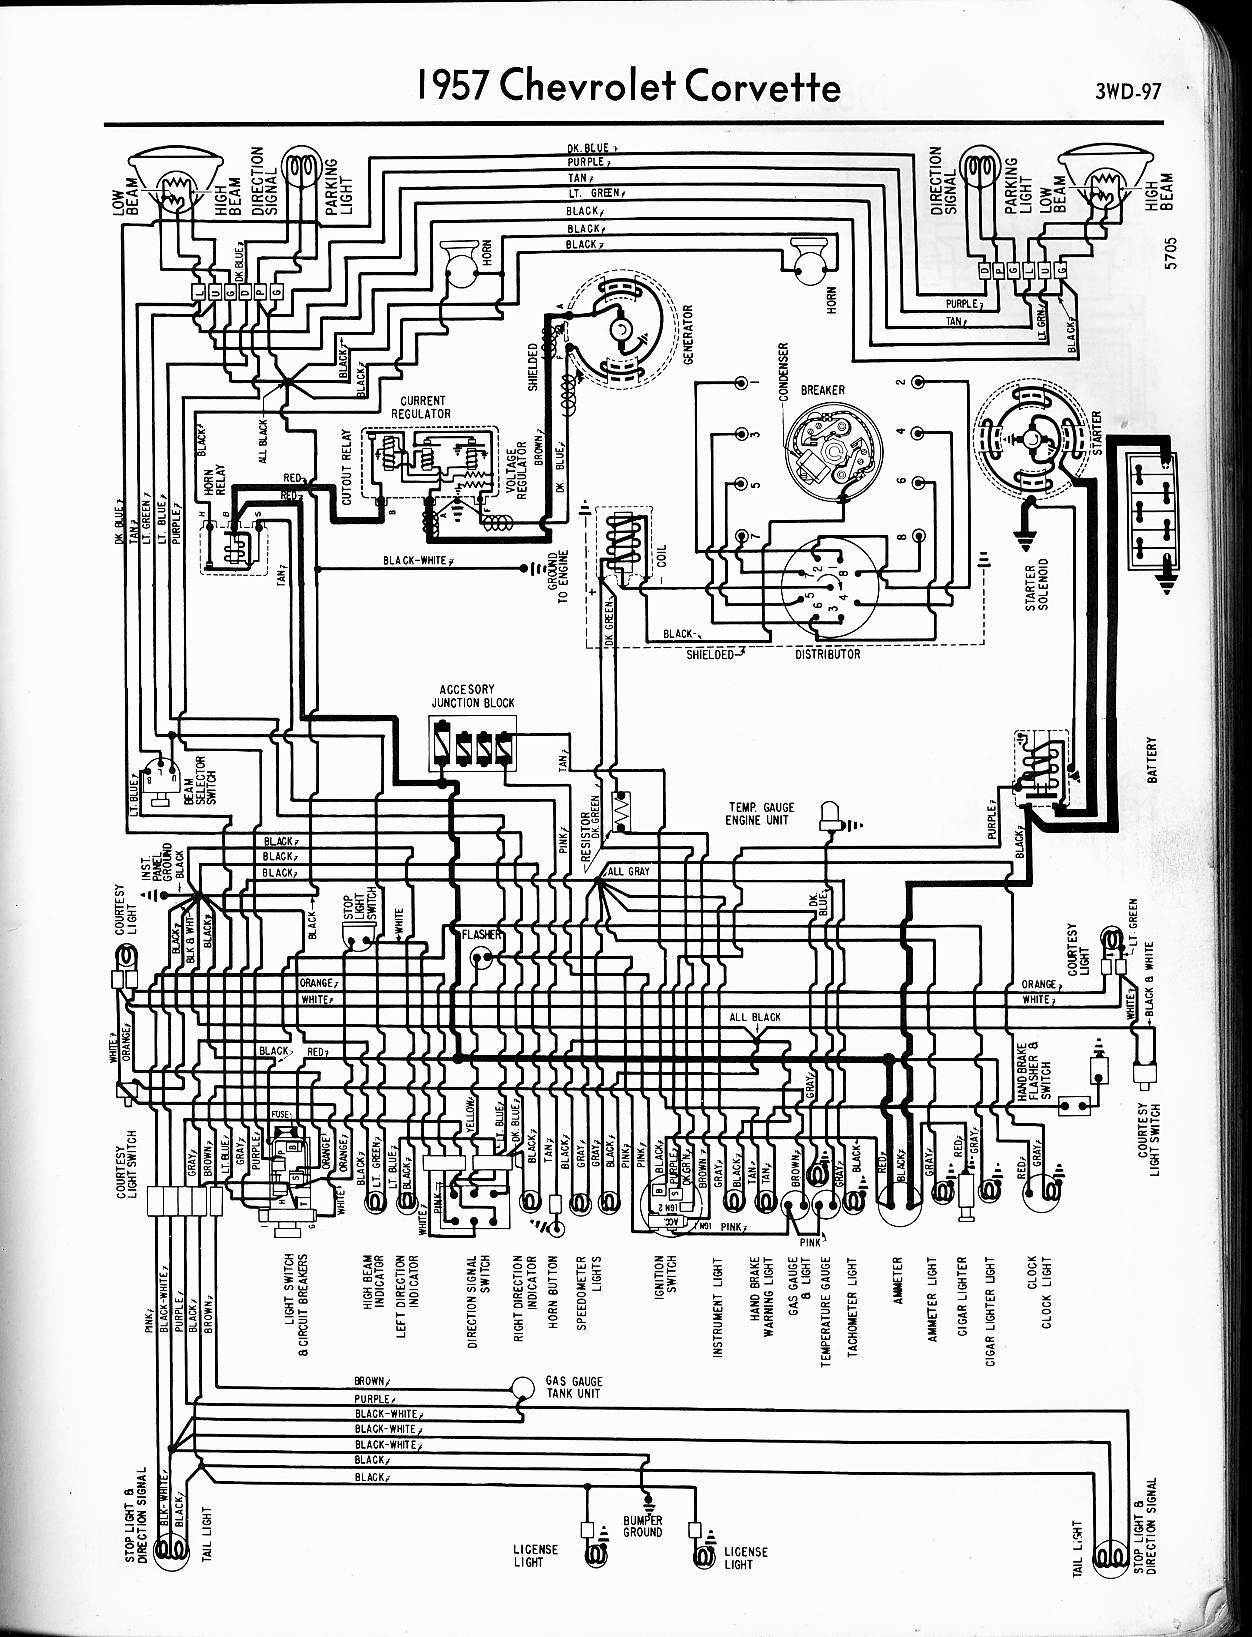 MWireChev57_3WD 097 57 65 chevy wiring diagrams 65 chevy wiring harness at readyjetset.co